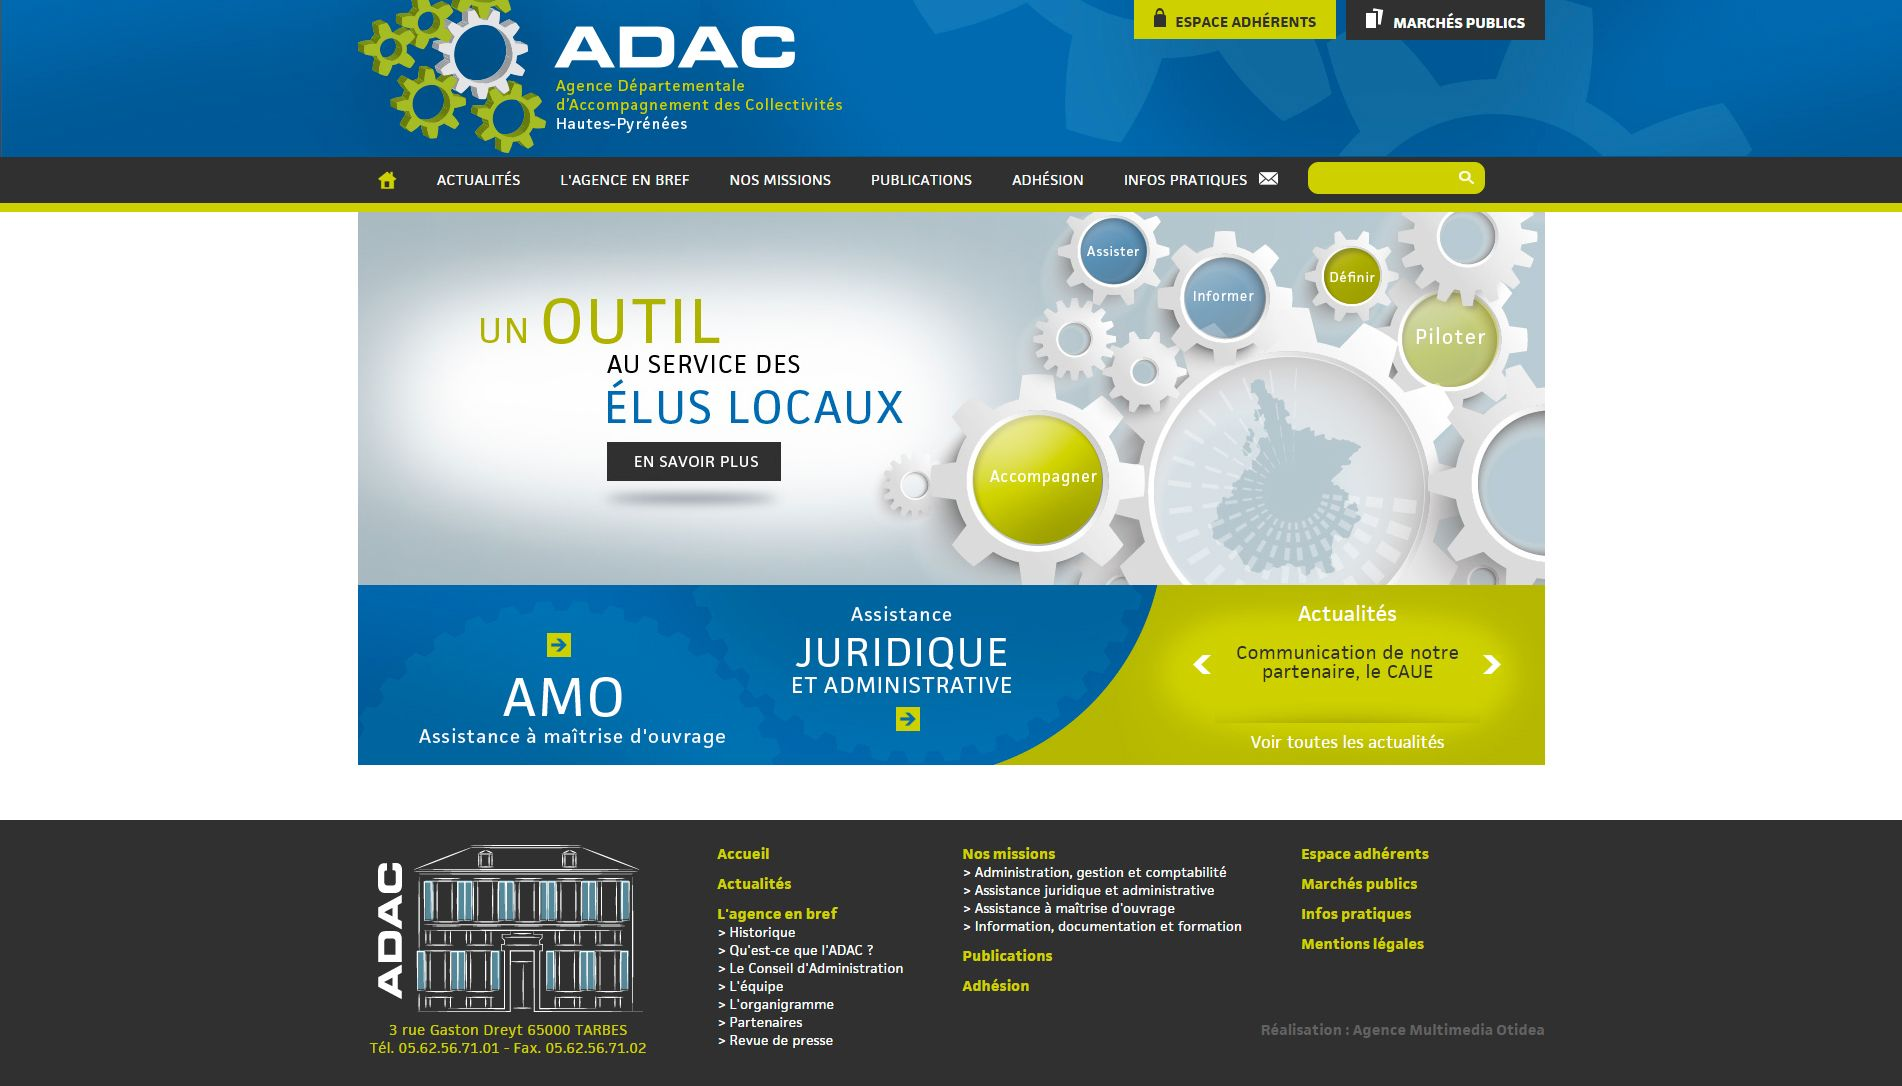 Site Internet De L Adac Agence Departementale D Accompagnement Des Collectivites Hautes Pyrenees 6 Maitrise De Soi Applications Mobiles Application Facebook